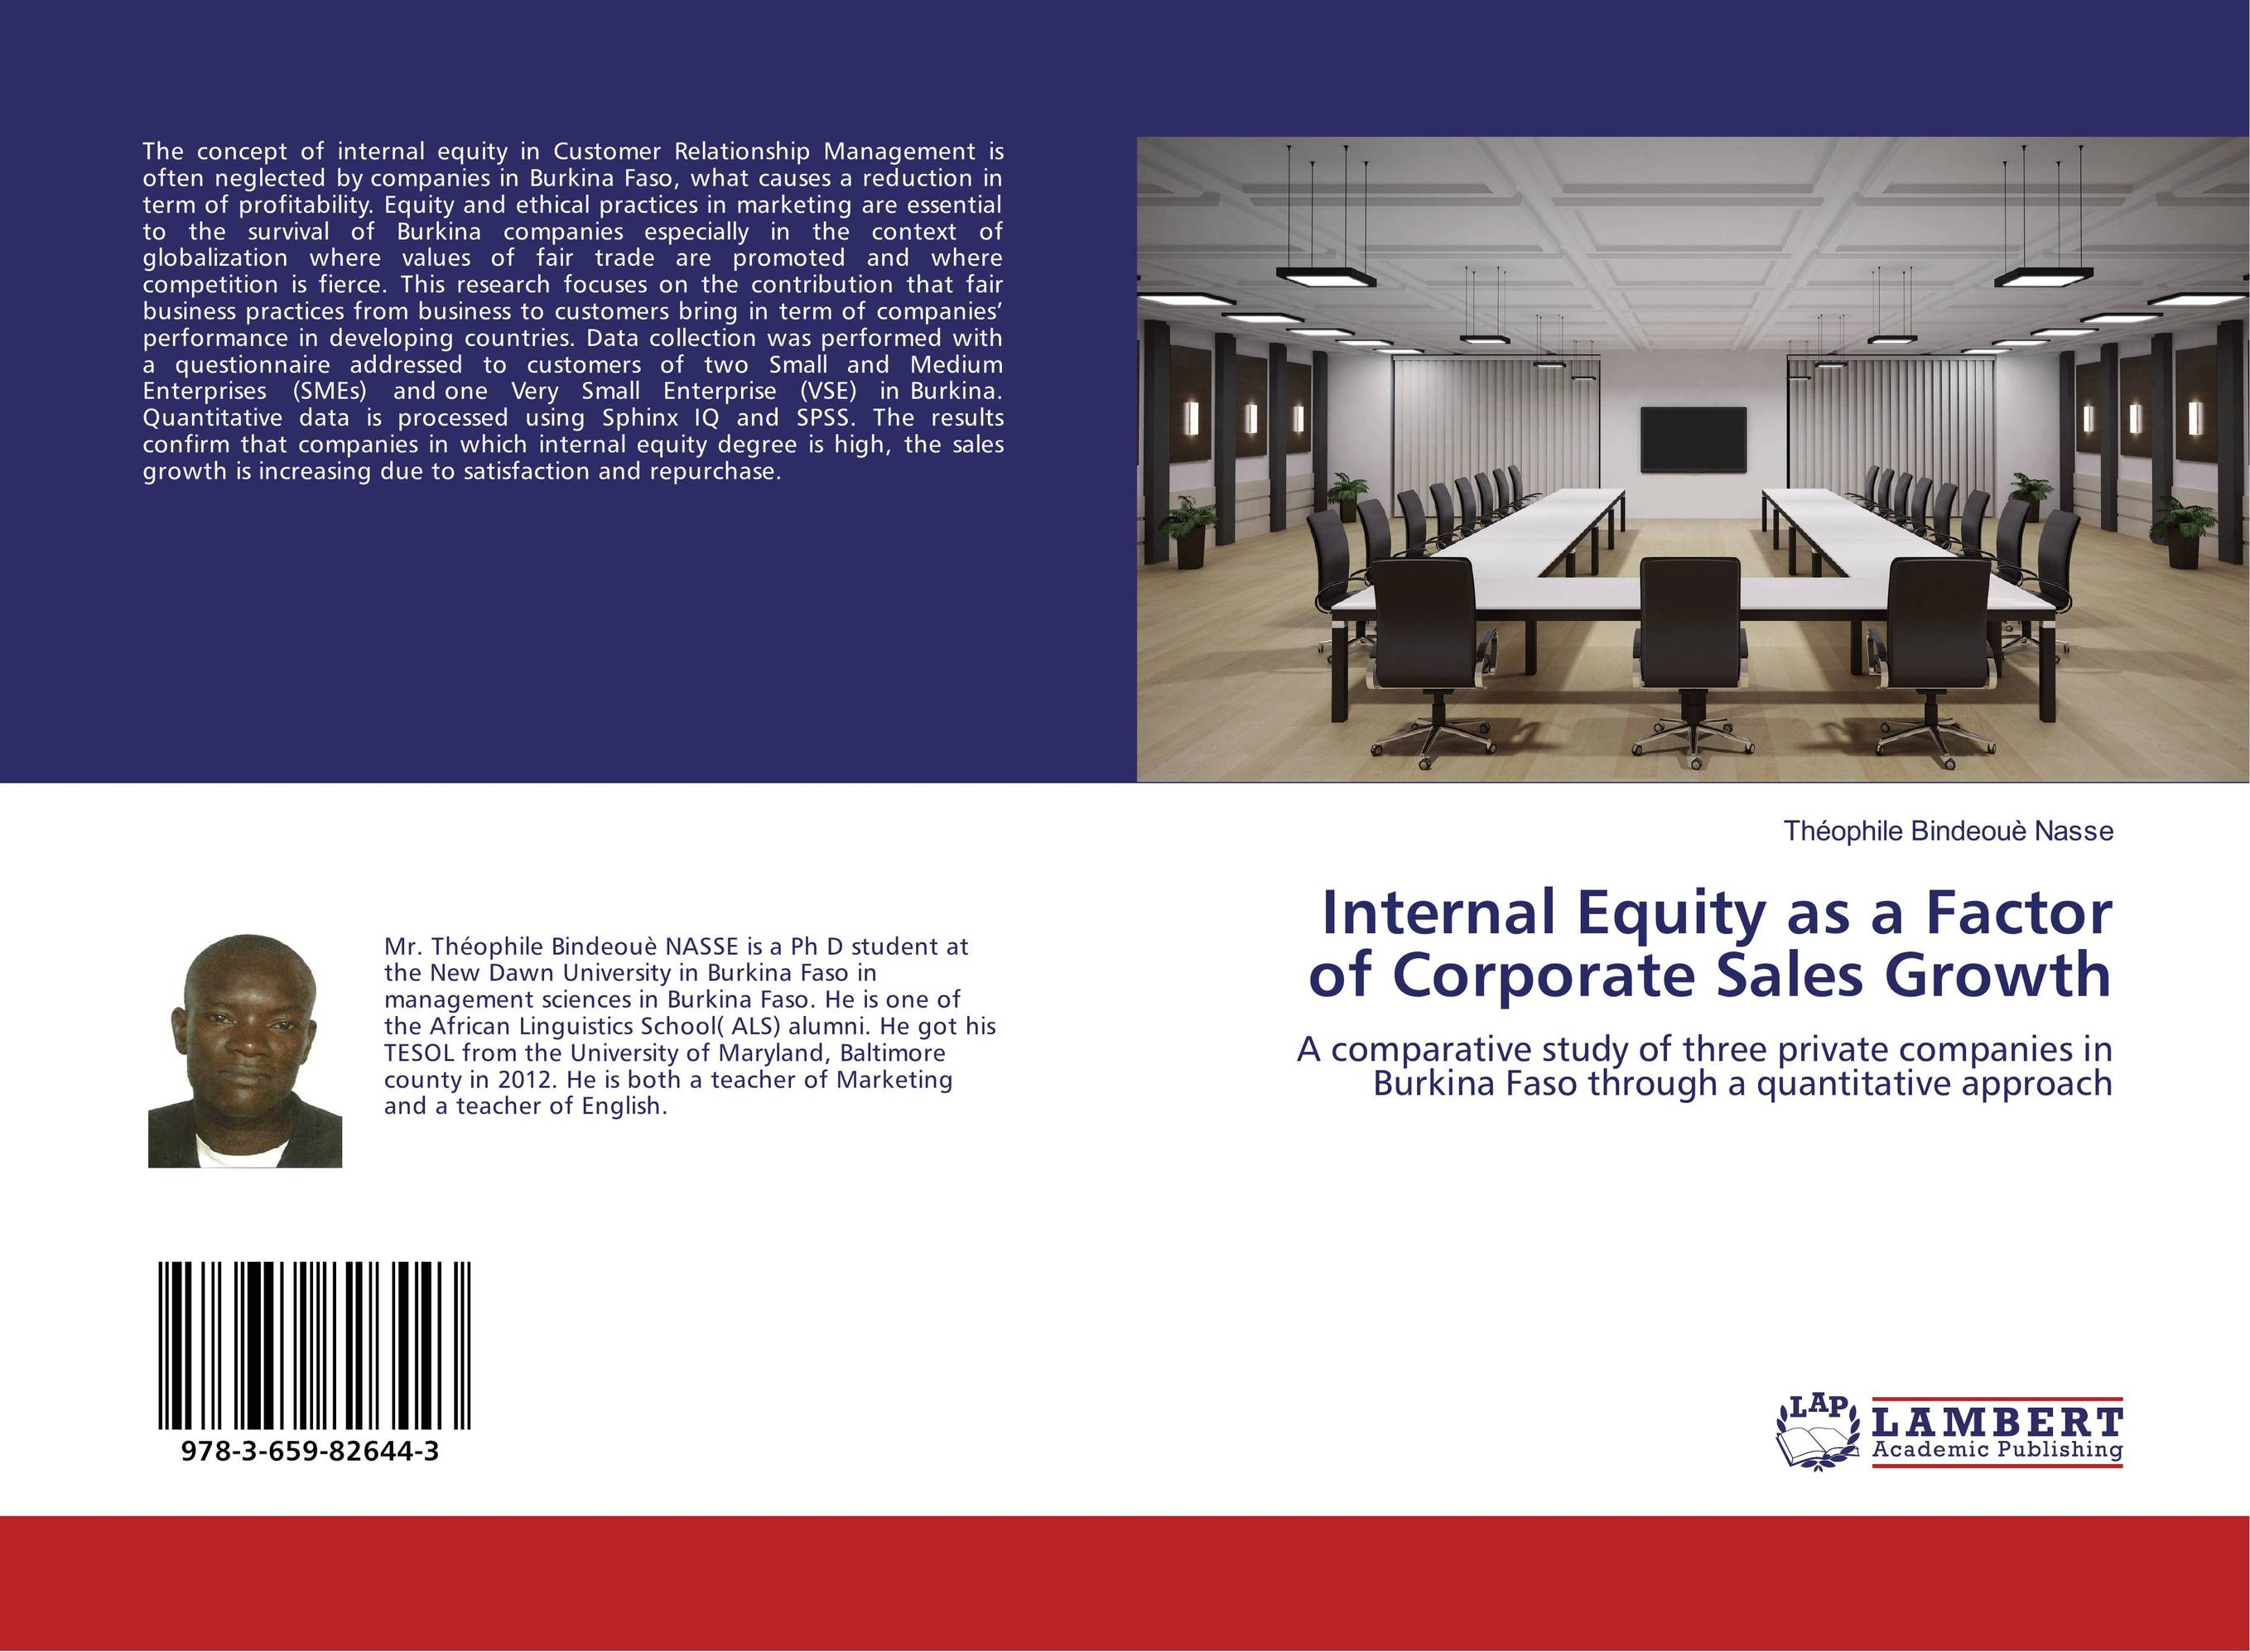 Internal Equity as a Factor of Corporate Sales Growth frank fabozzi j quantitative equity investing techniques and strategies